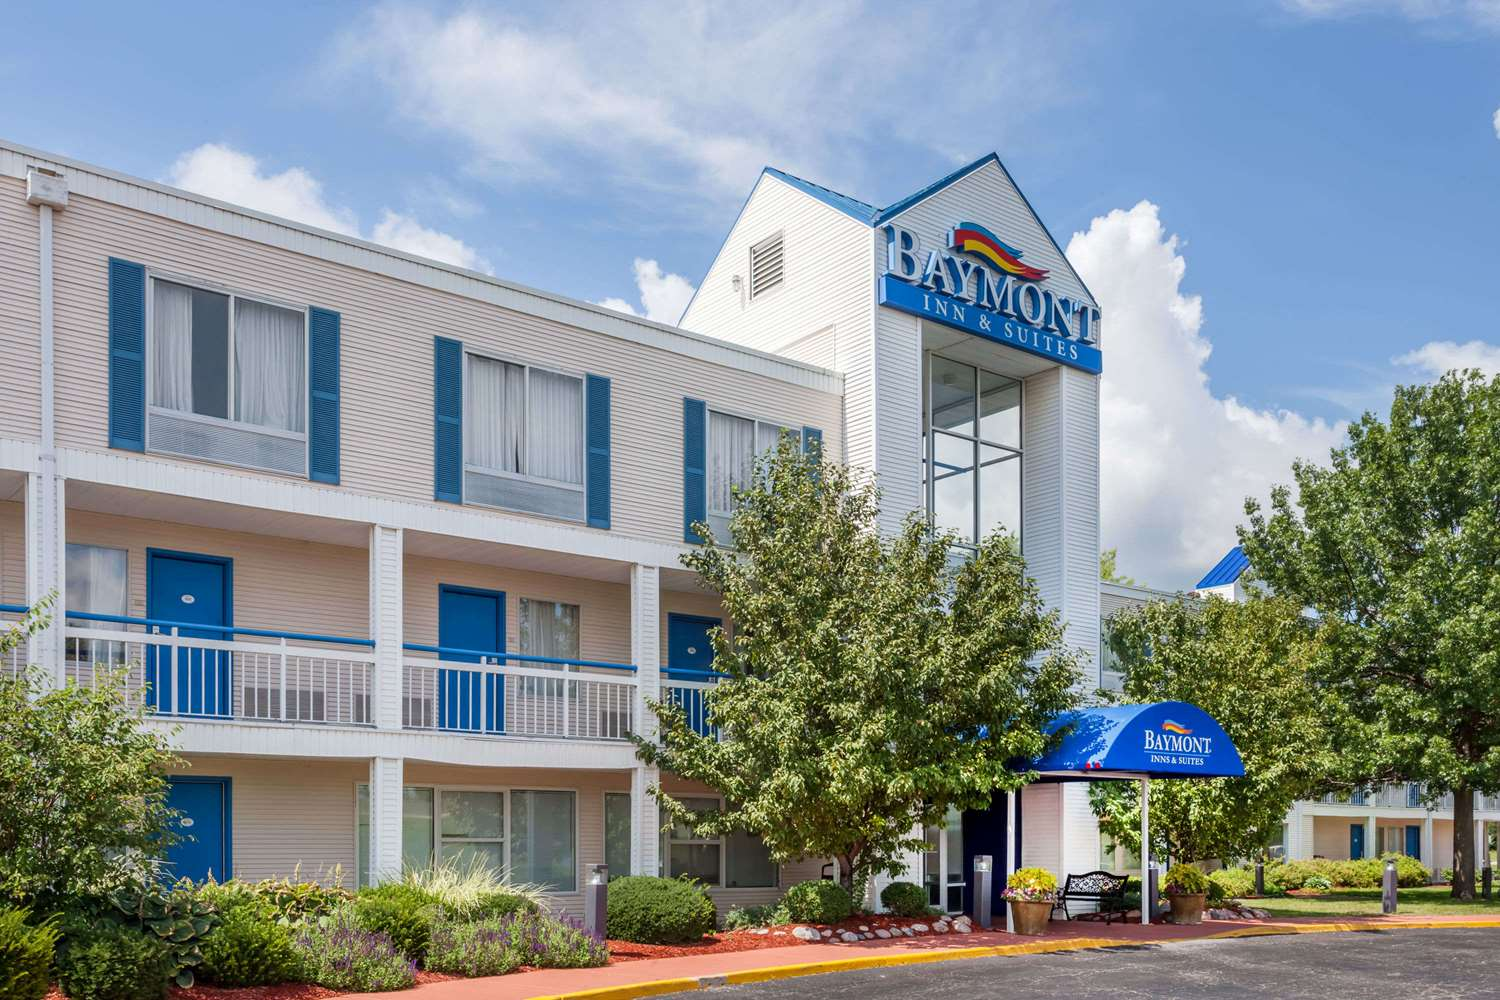 Baymont Inn & Suites Peoria